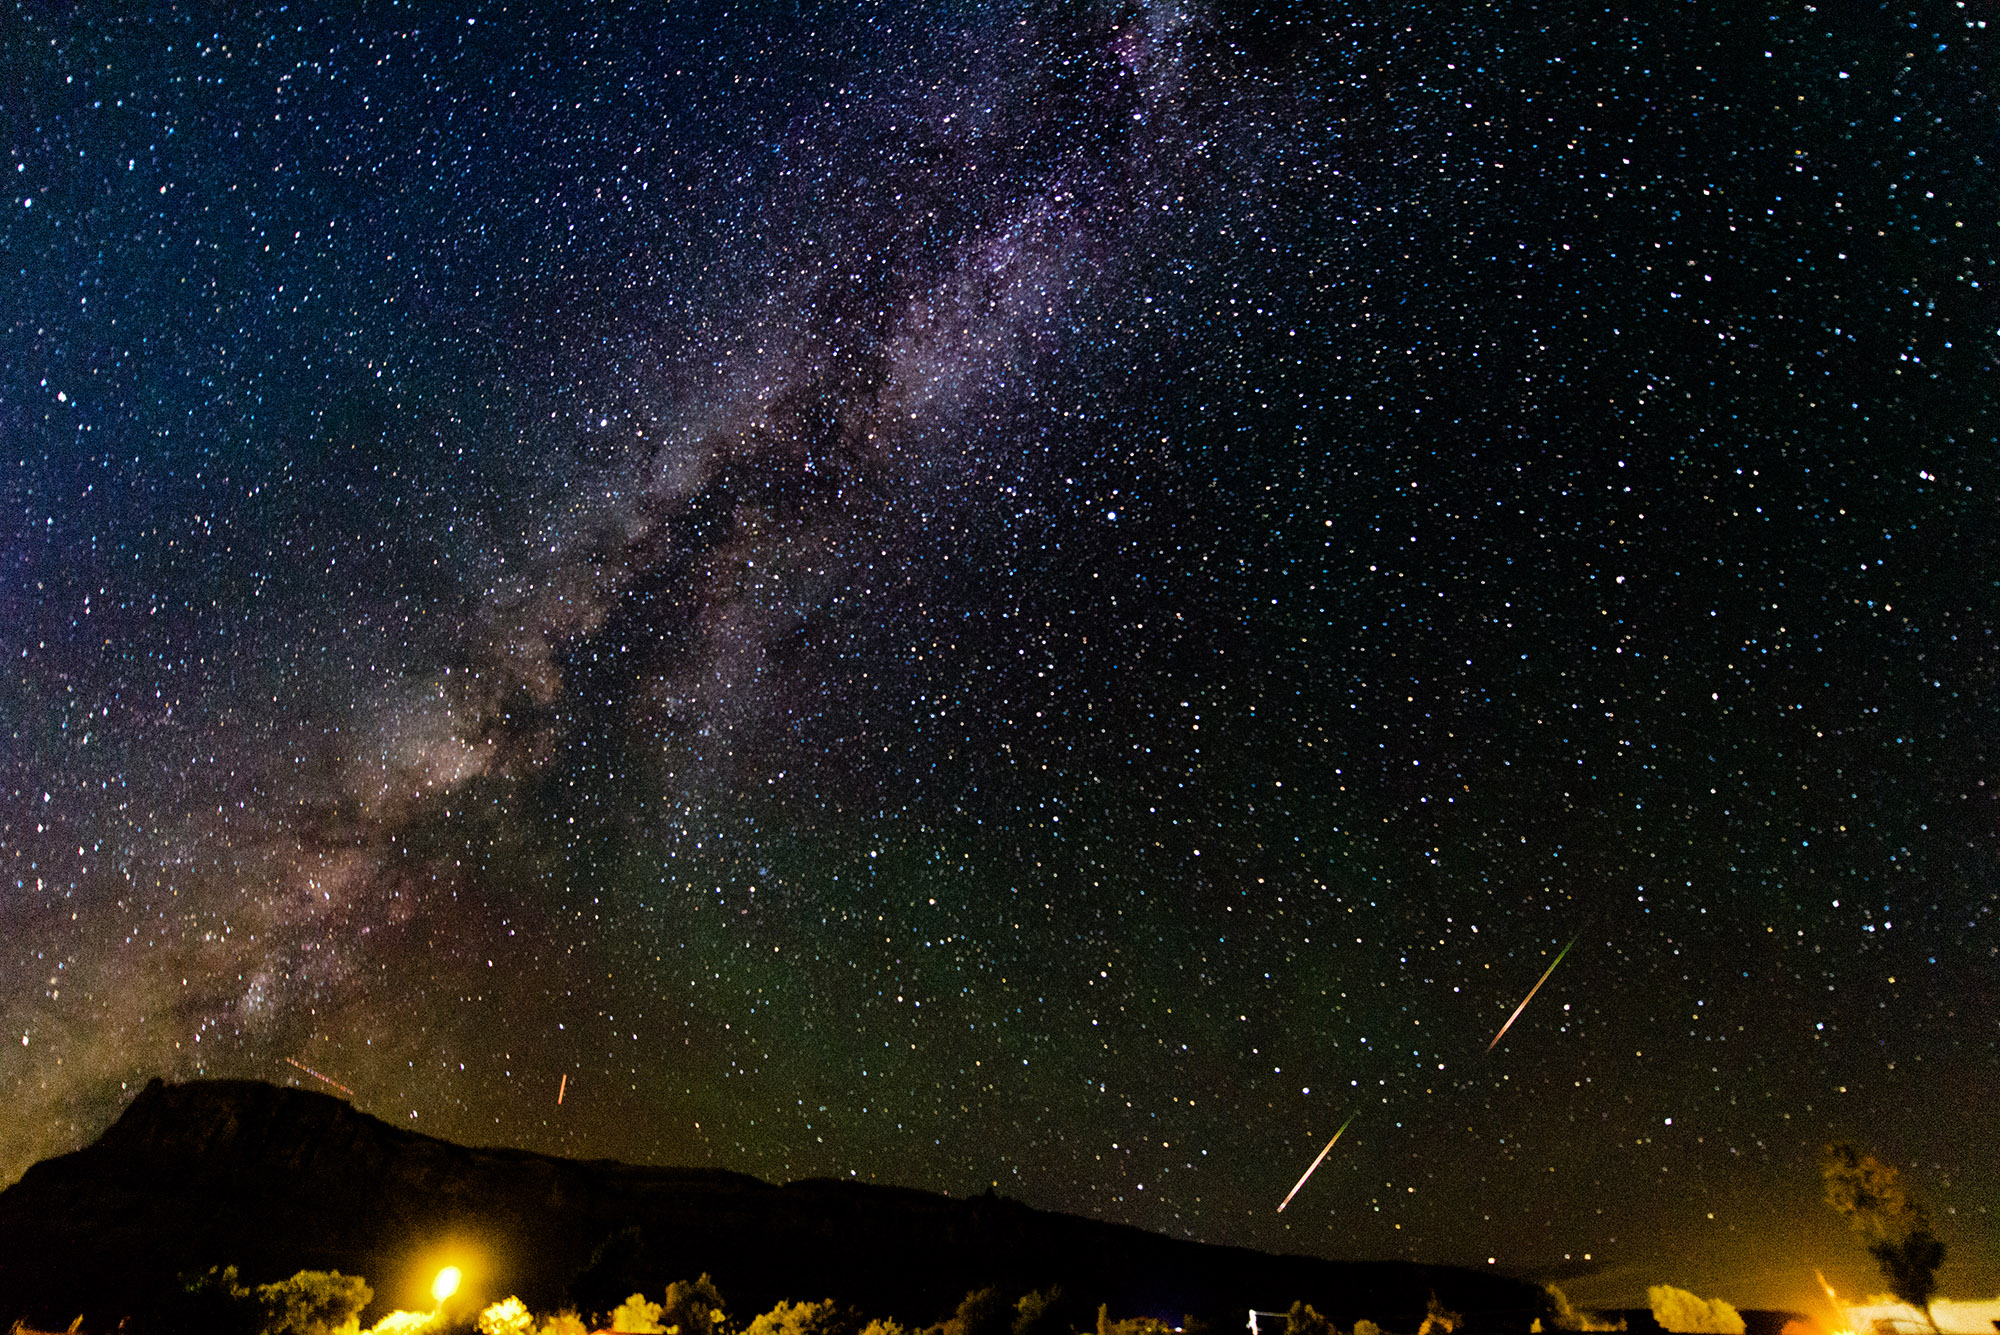 Moab, Utah 2015 - A plateau, the Milky Way, and two Perseid meteors - ISO 12800, 14mm, f/2.8, 20 Second Exposure